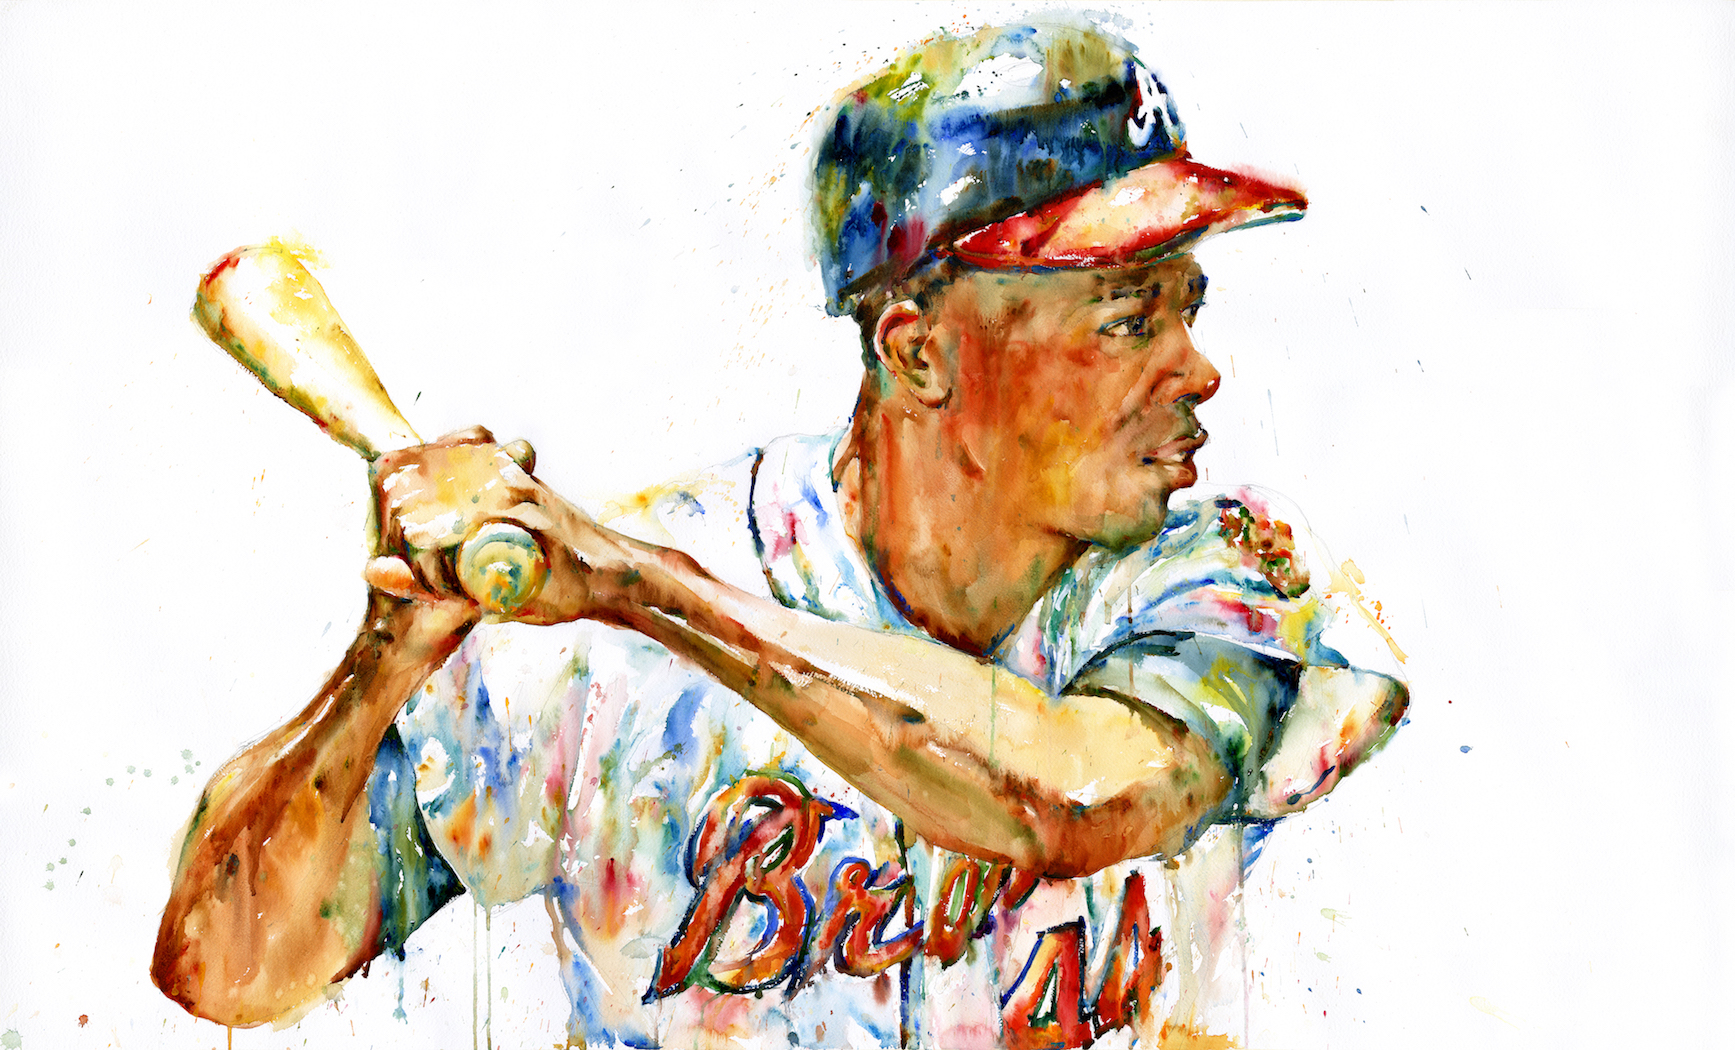 """Hank Aaron"" by Richard Sullivan, Acrylic on panel, 24x36in, 2019, Private collection"